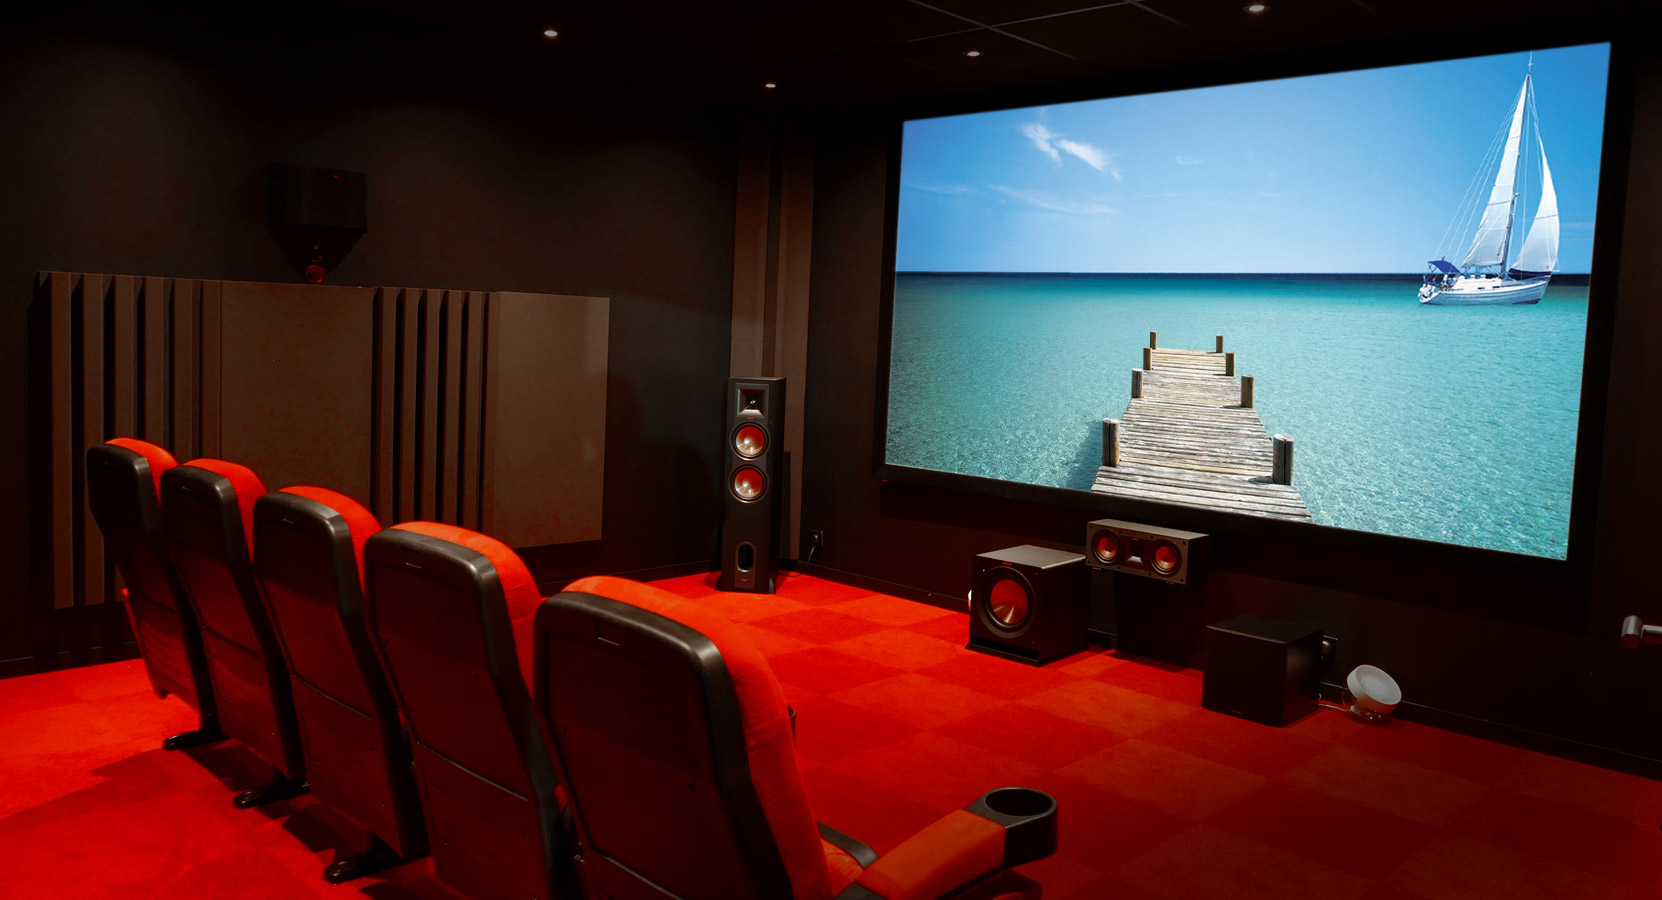 Cinexion Le Cinema Chez Soi By Cinexion